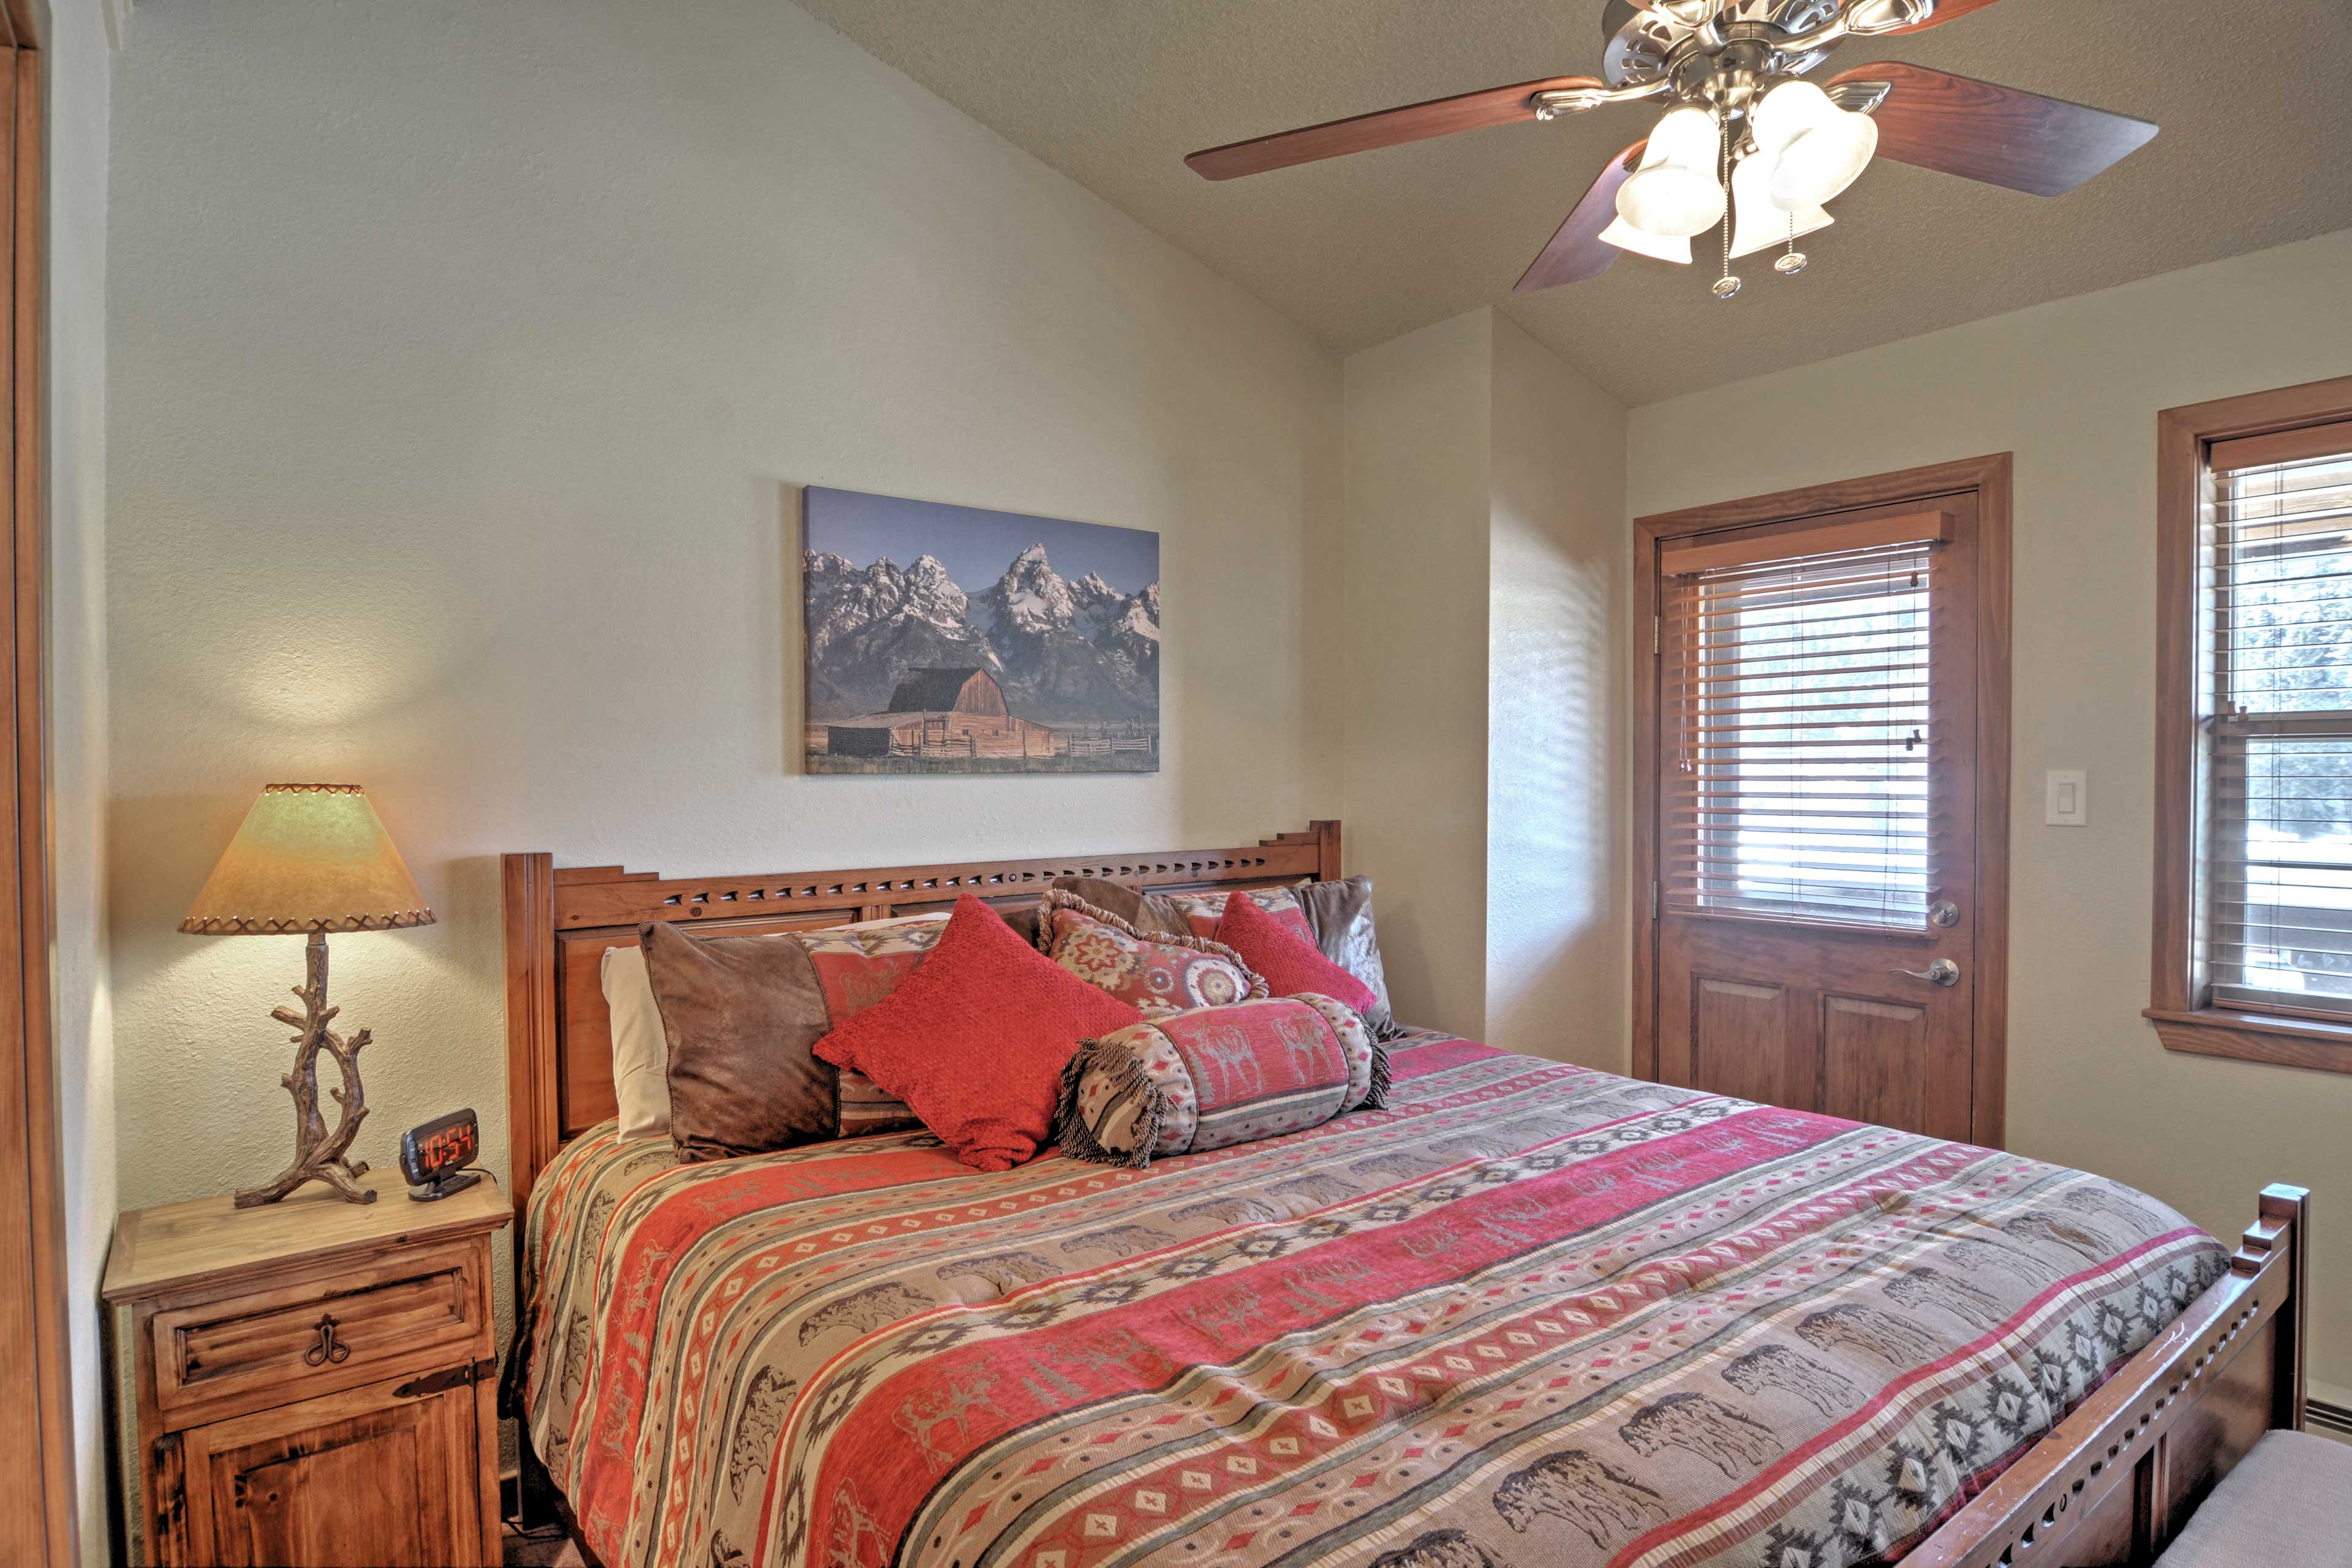 Fall into sweet dreams in this peaceful master bedroom.